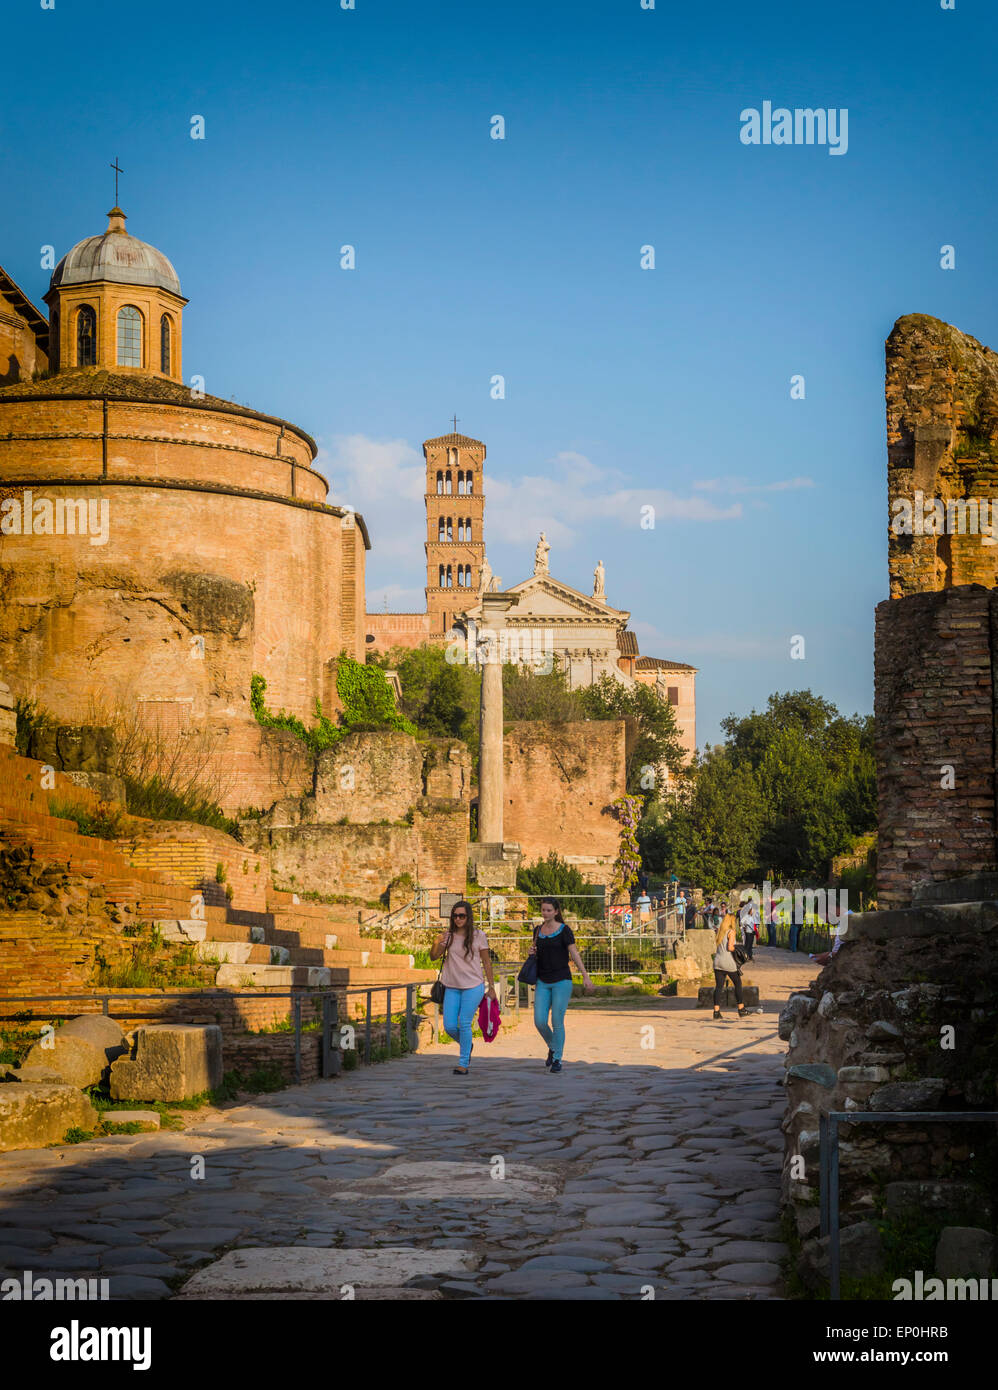 Rome, Italy.  Visitors strolling in the Roman Forum. - Stock Image